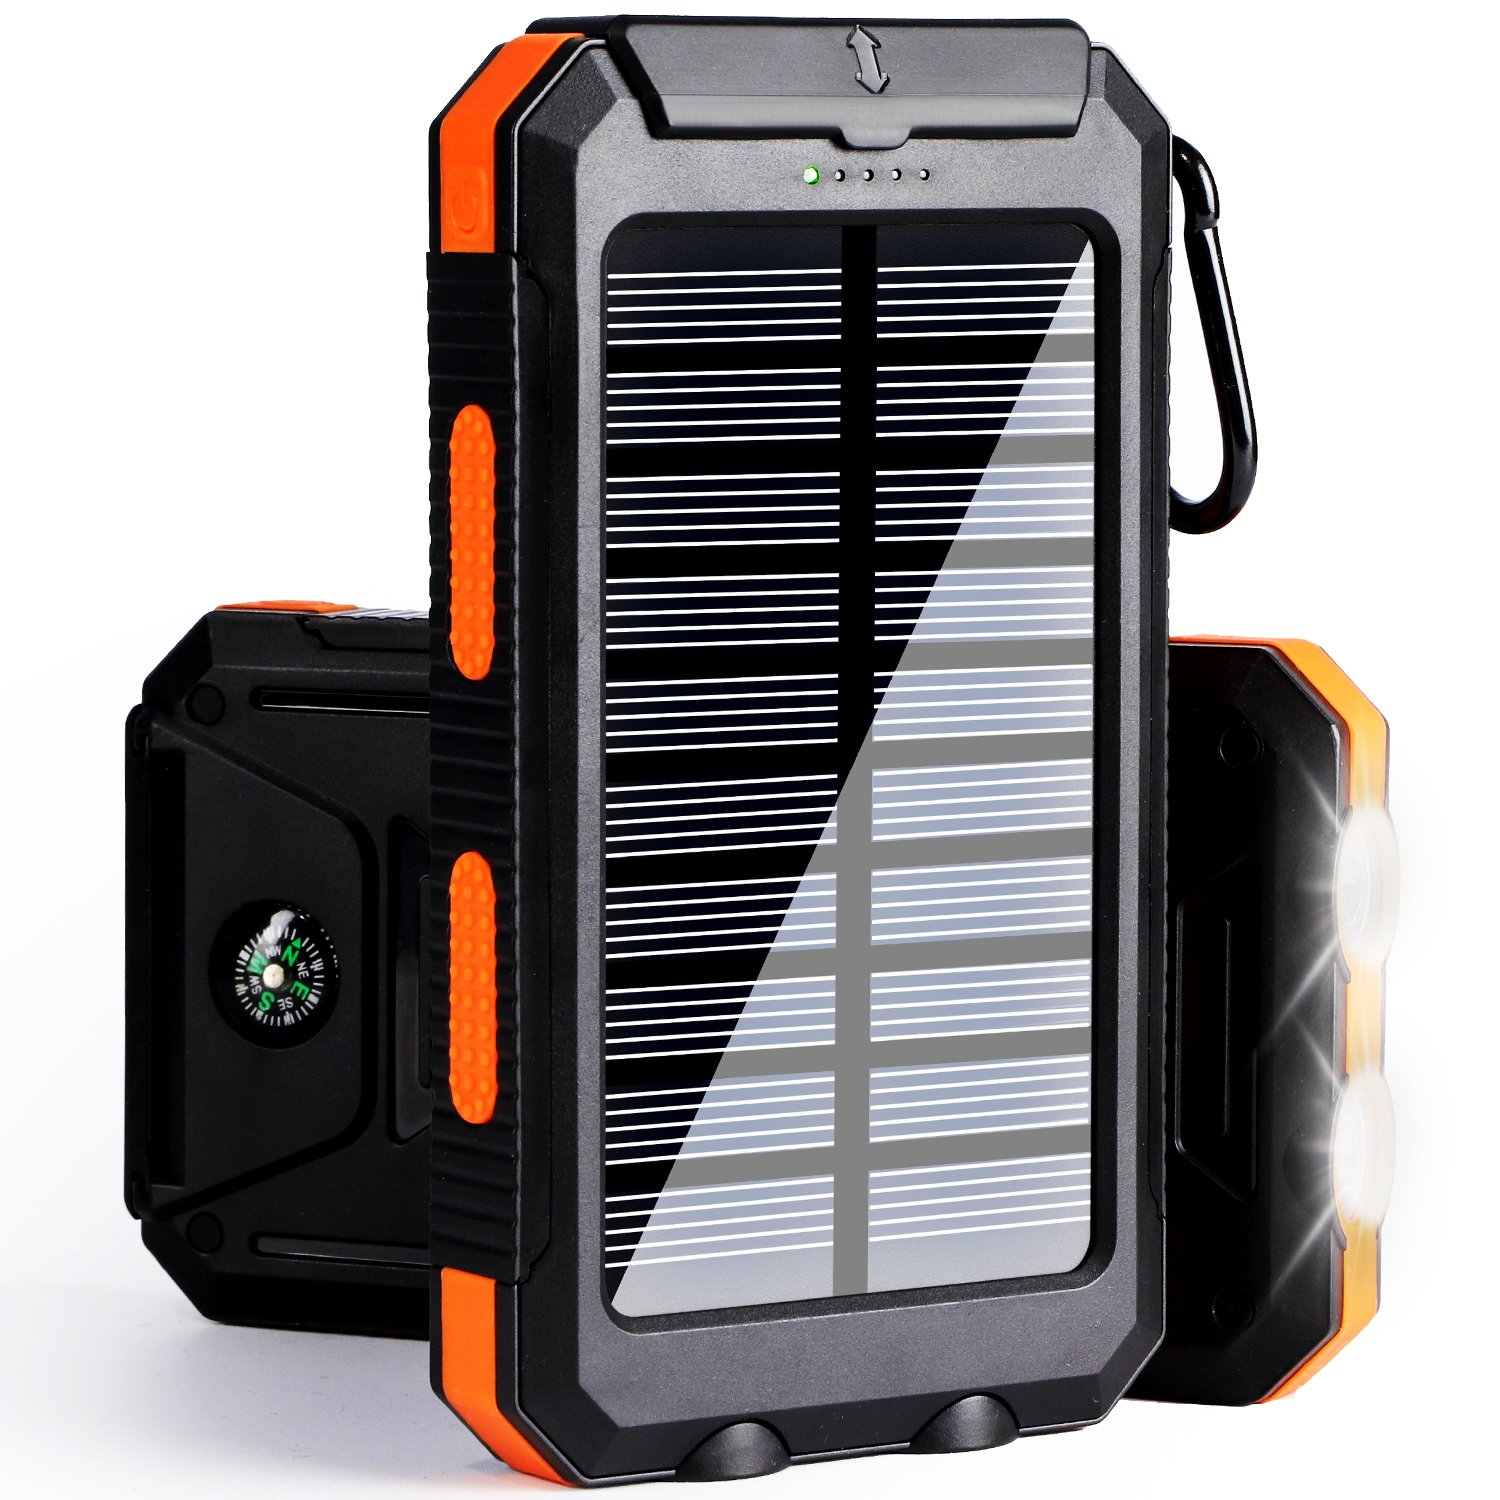 Soyond Solar Phone Charger, Solar Power Bank, 10000 mAh Portable Power Bank Solar Battery Charger Dual USB Waterproof with 2 Led Light Flashlight Compass for iPhone, ipad, Samsung(Orange)